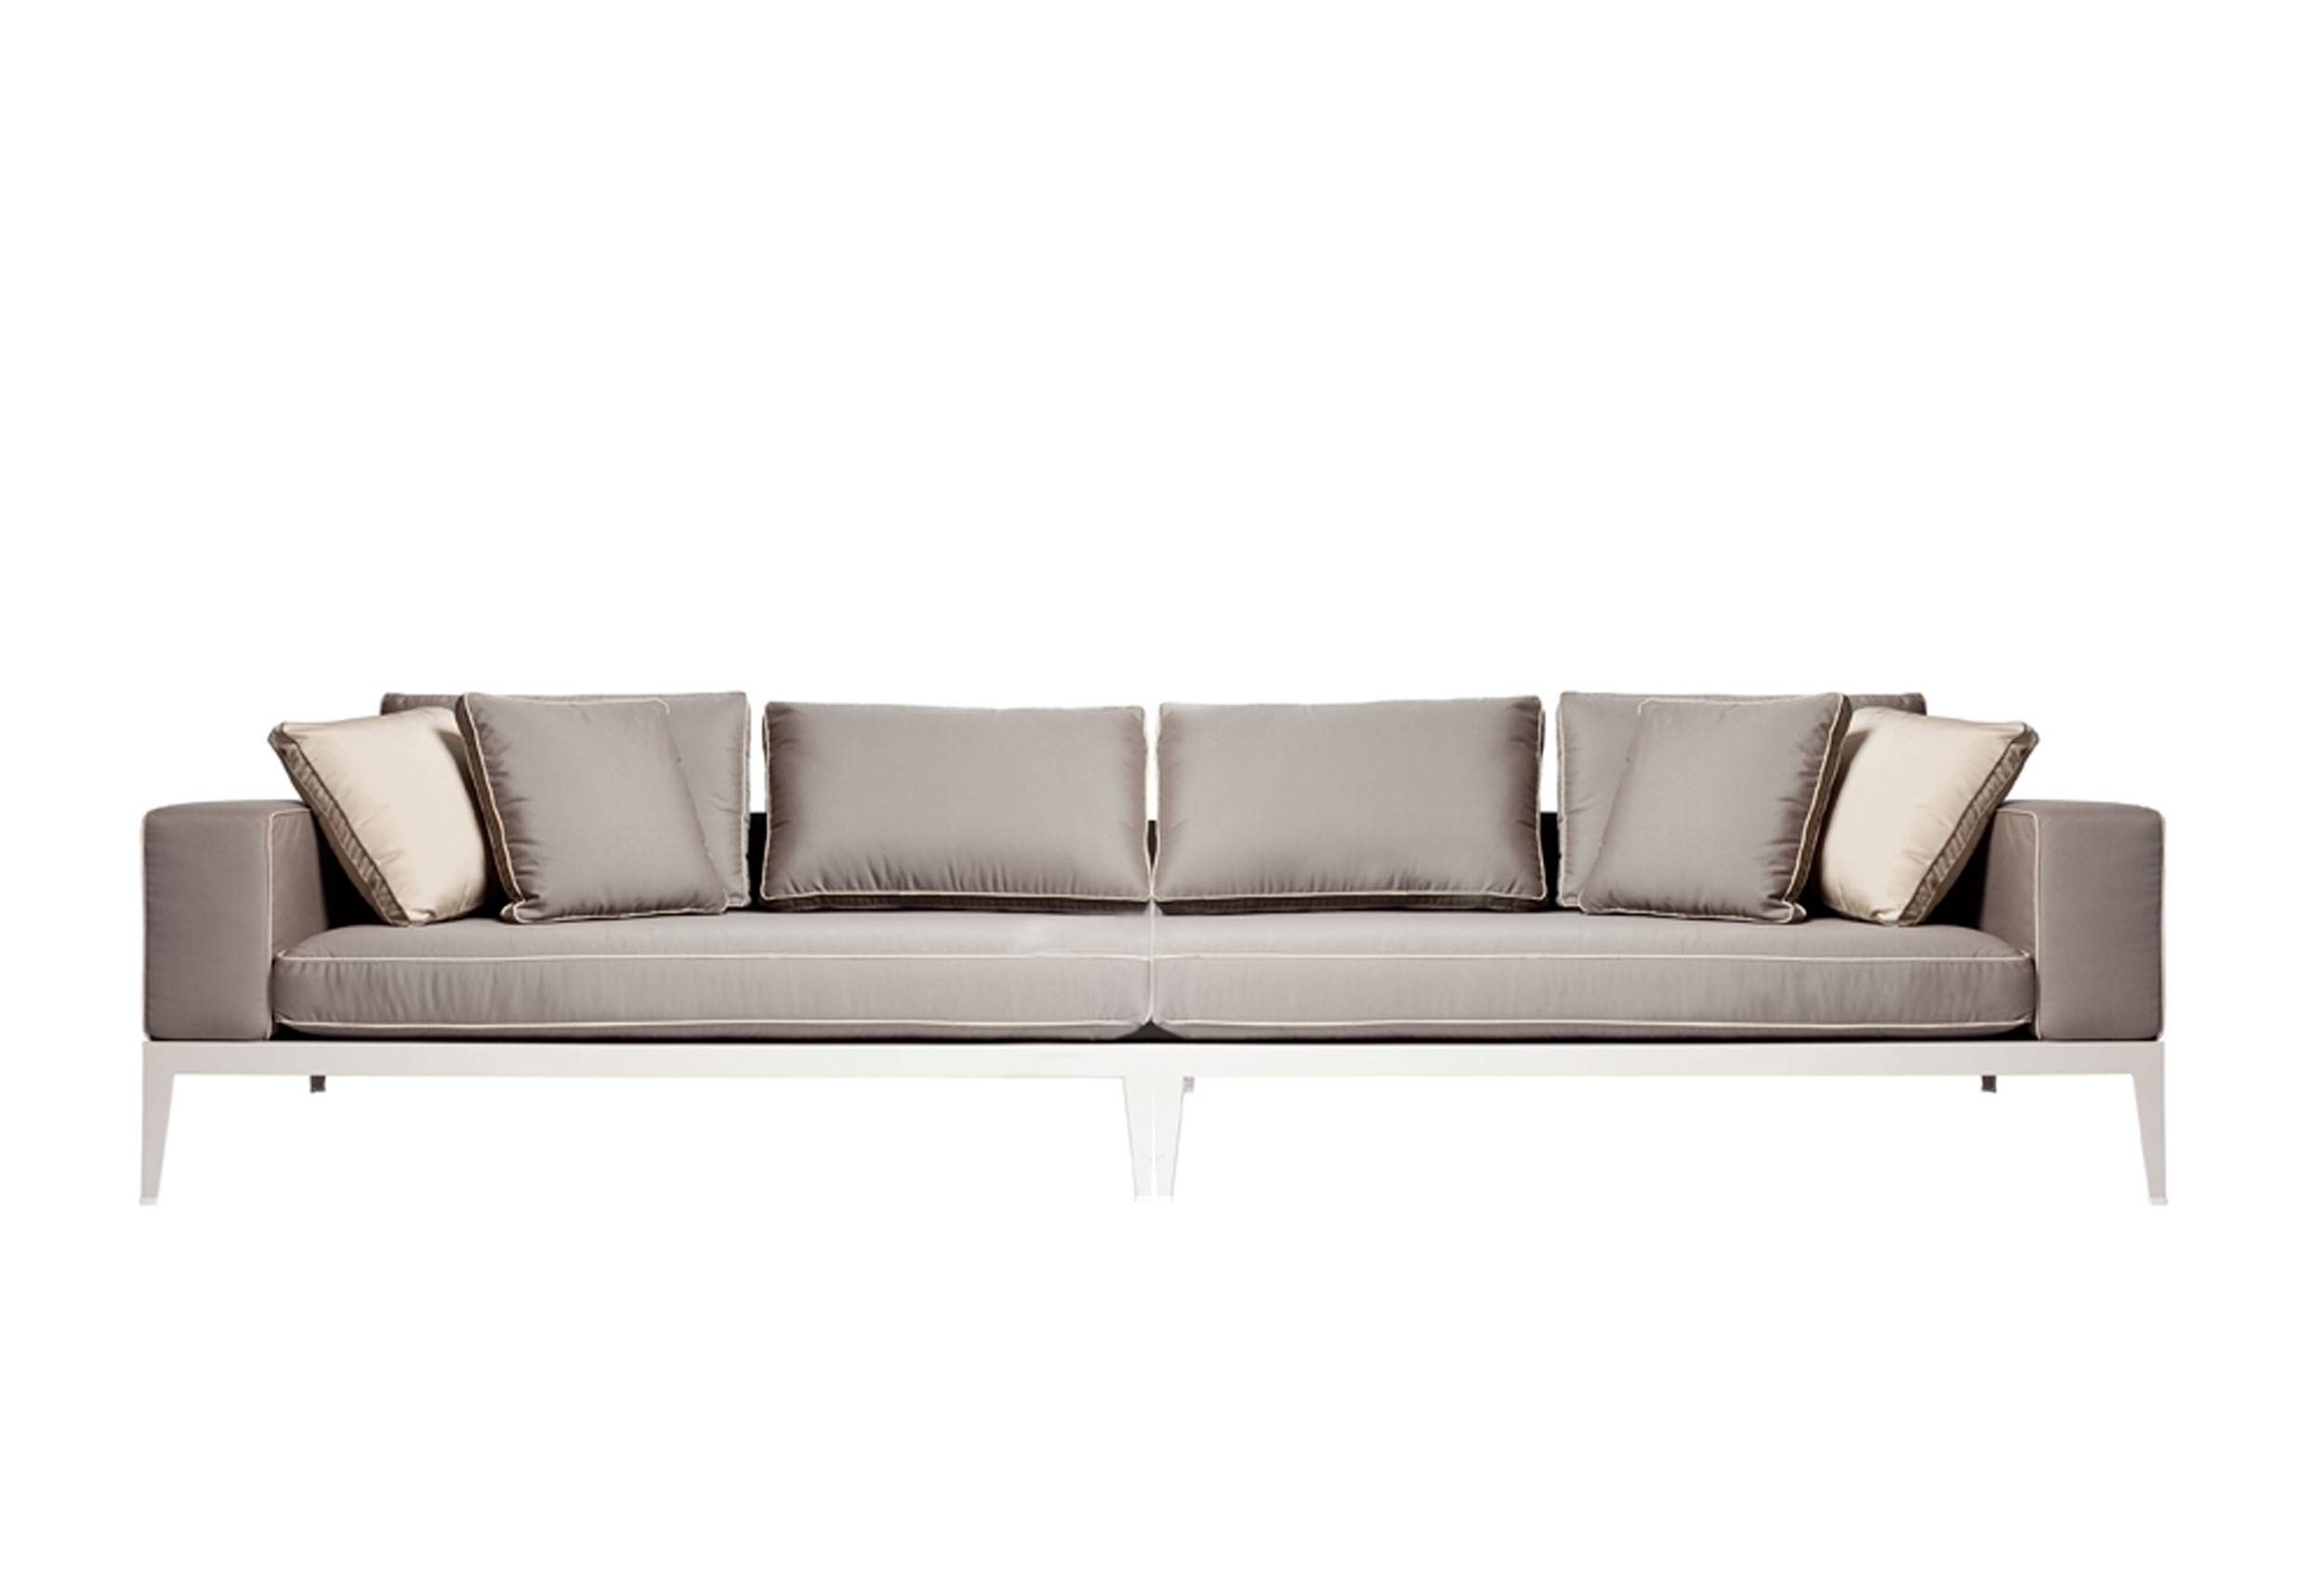 Balmoral 4 Seater Sofa | Viesso inside 4 Seat Couch (Image 6 of 30)